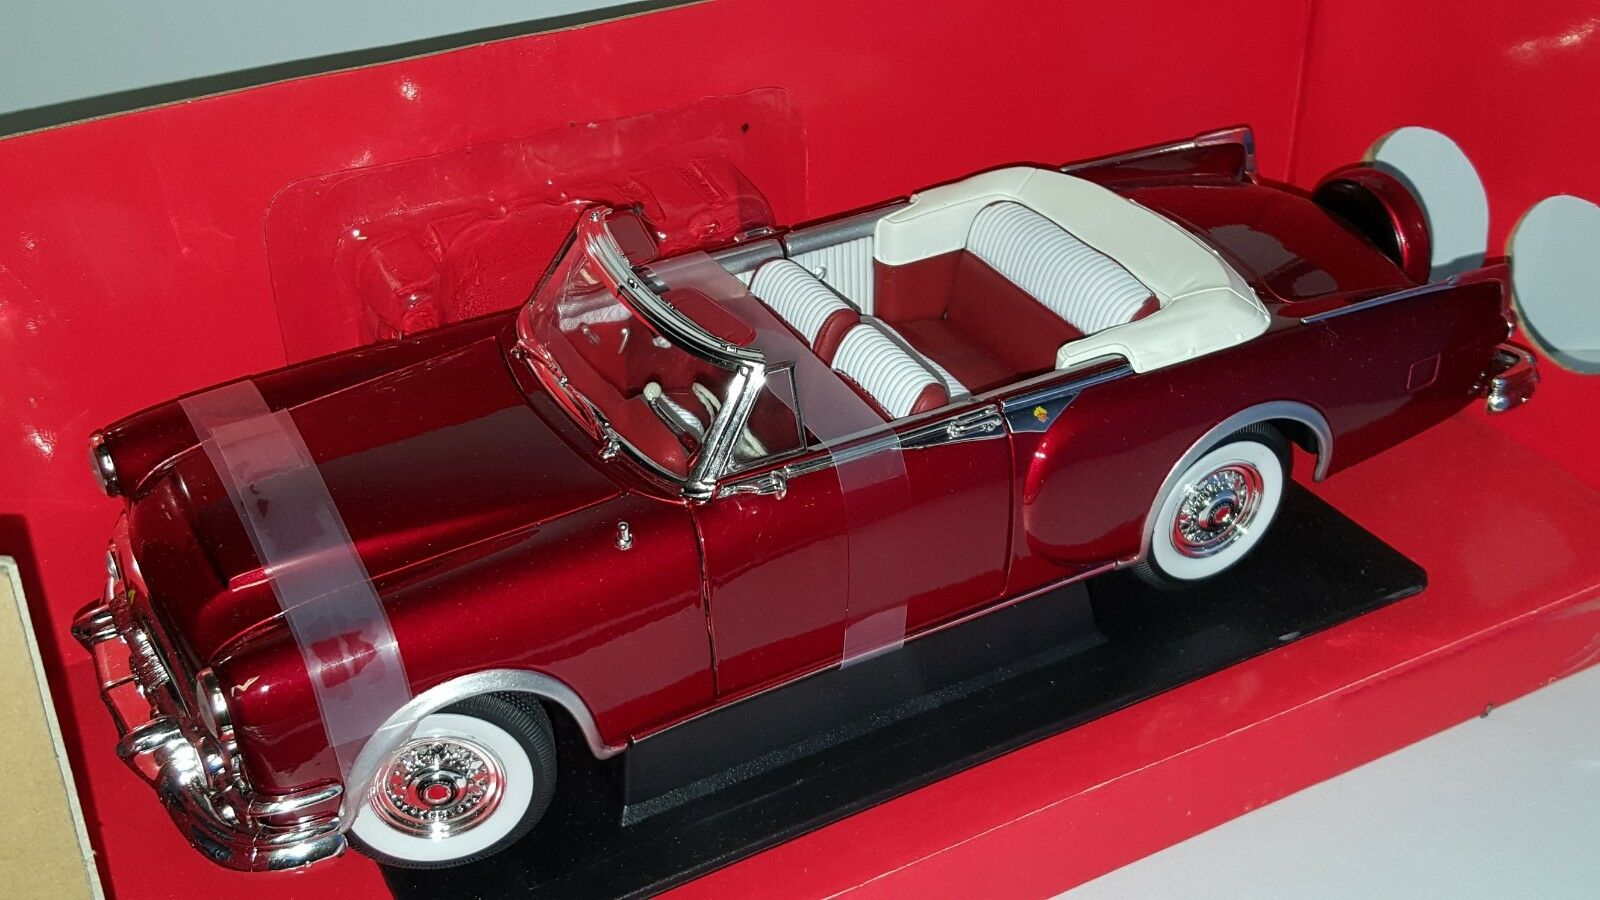 1 18 firma Road 1953 Packard Caribbean Converdeible Caramelo rosso GD